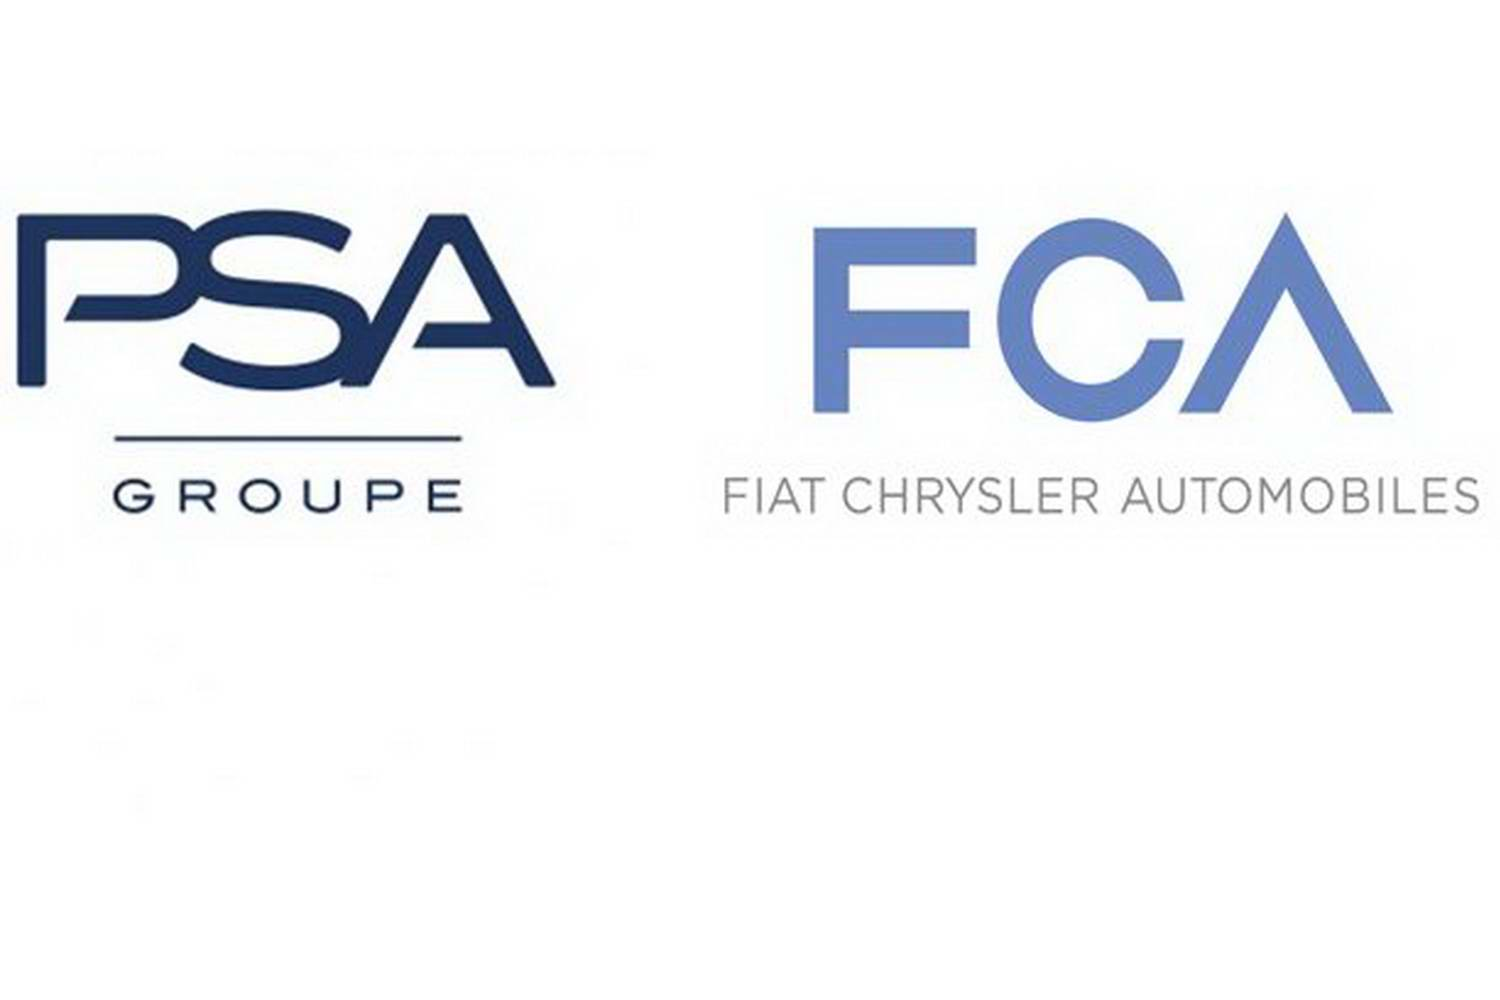 Car Industry News | PSA/FCA merger becomes official | CompleteCar.ie